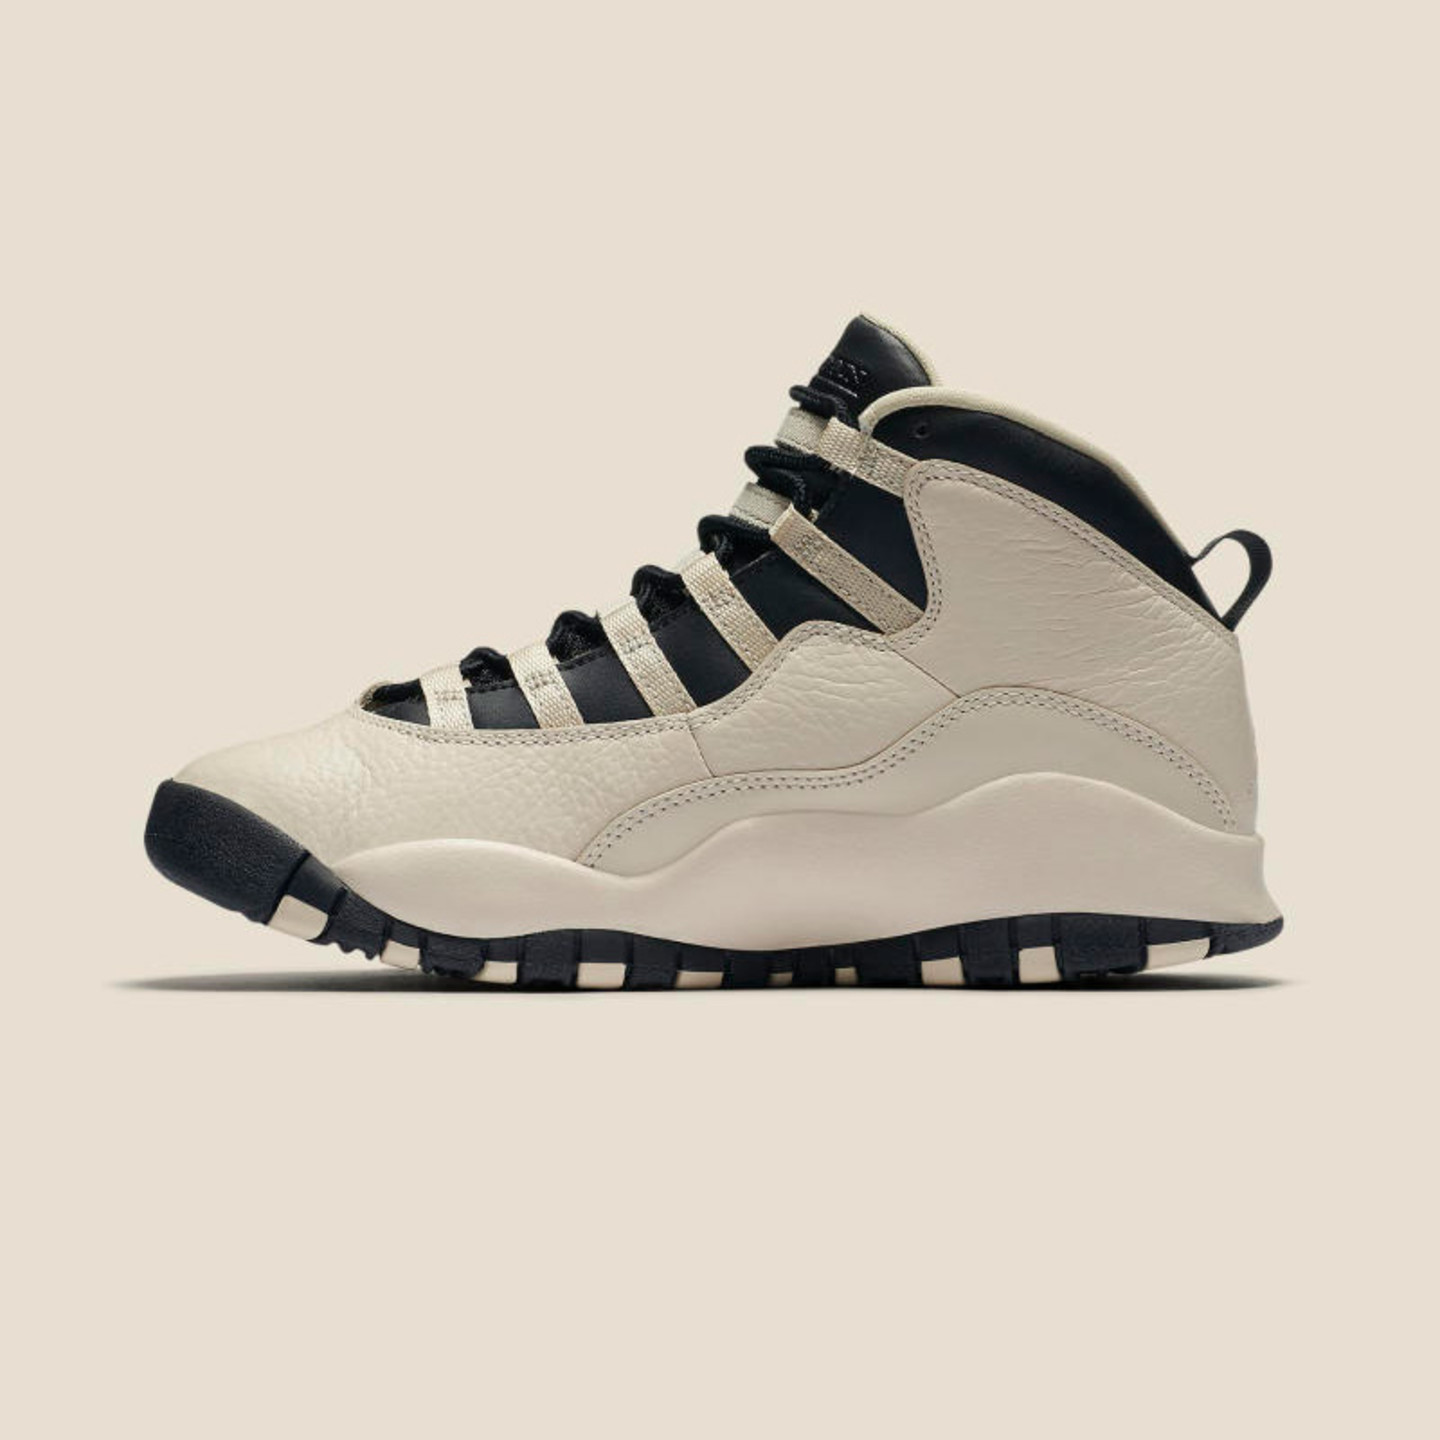 Jordan Air Jordan 10 Retro Premium GG Pearl White / Black 832645-207-43